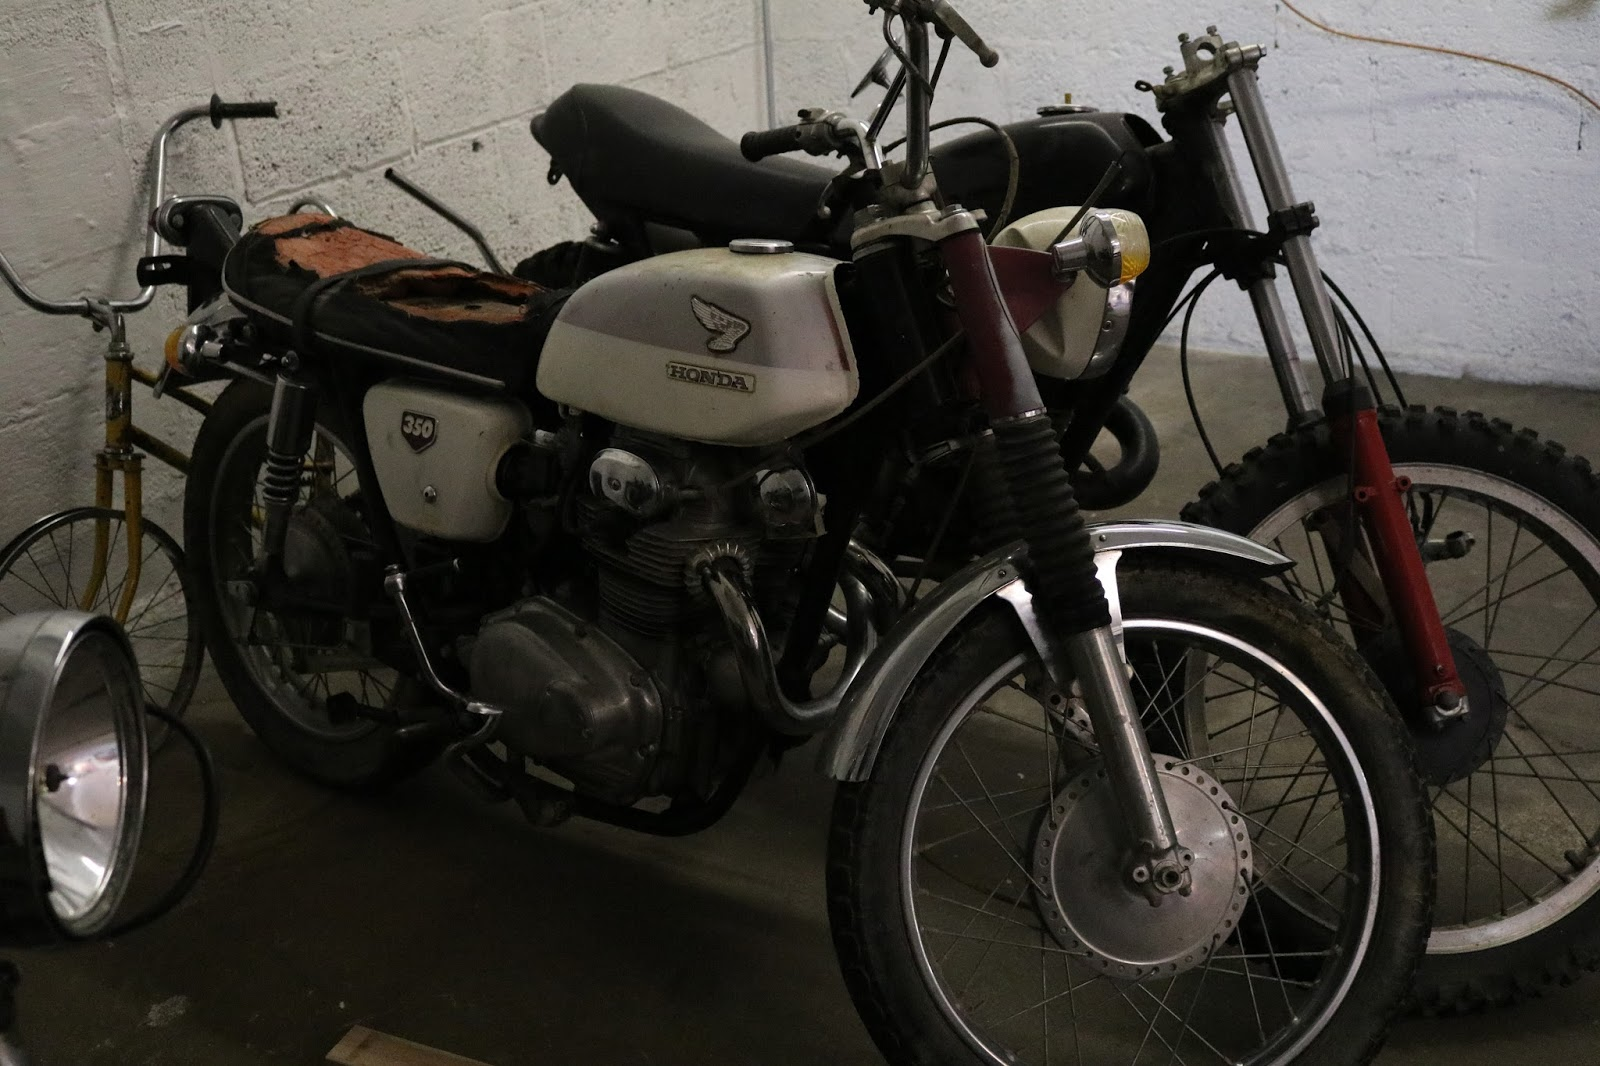 Oldmotodude 1969 Honda Cl350 Project Spotted In A Garage 1970 75cc Motorcycle Southern Colorado